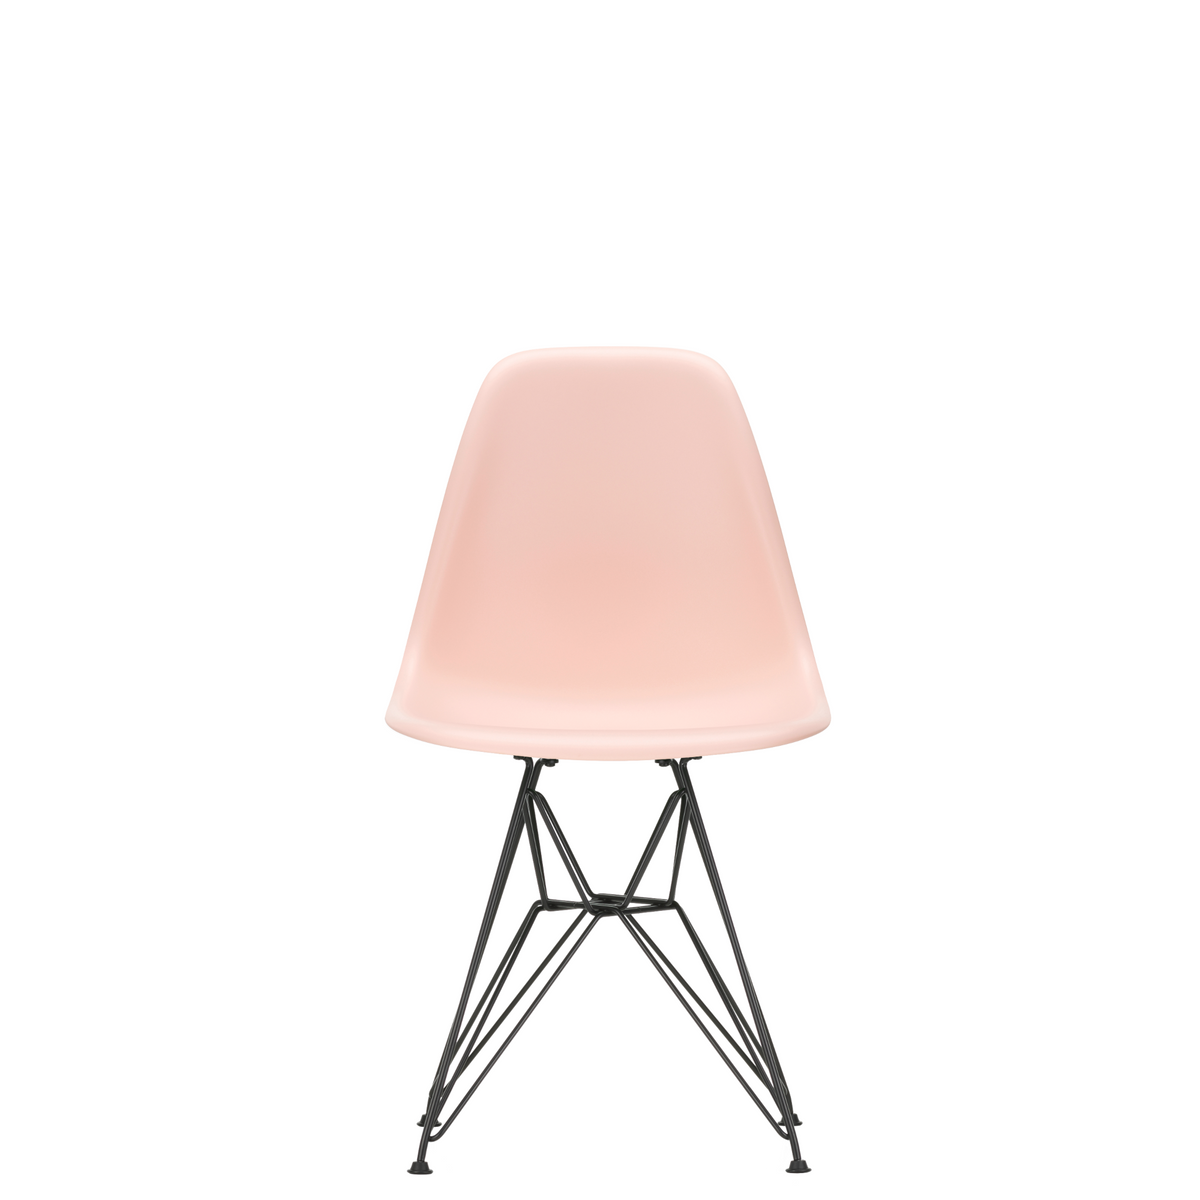 Vitra Eames Plastic Side Chair DSR Powder Coated for Outdoor Use Pale Rose Shell Black Powdercoated Base